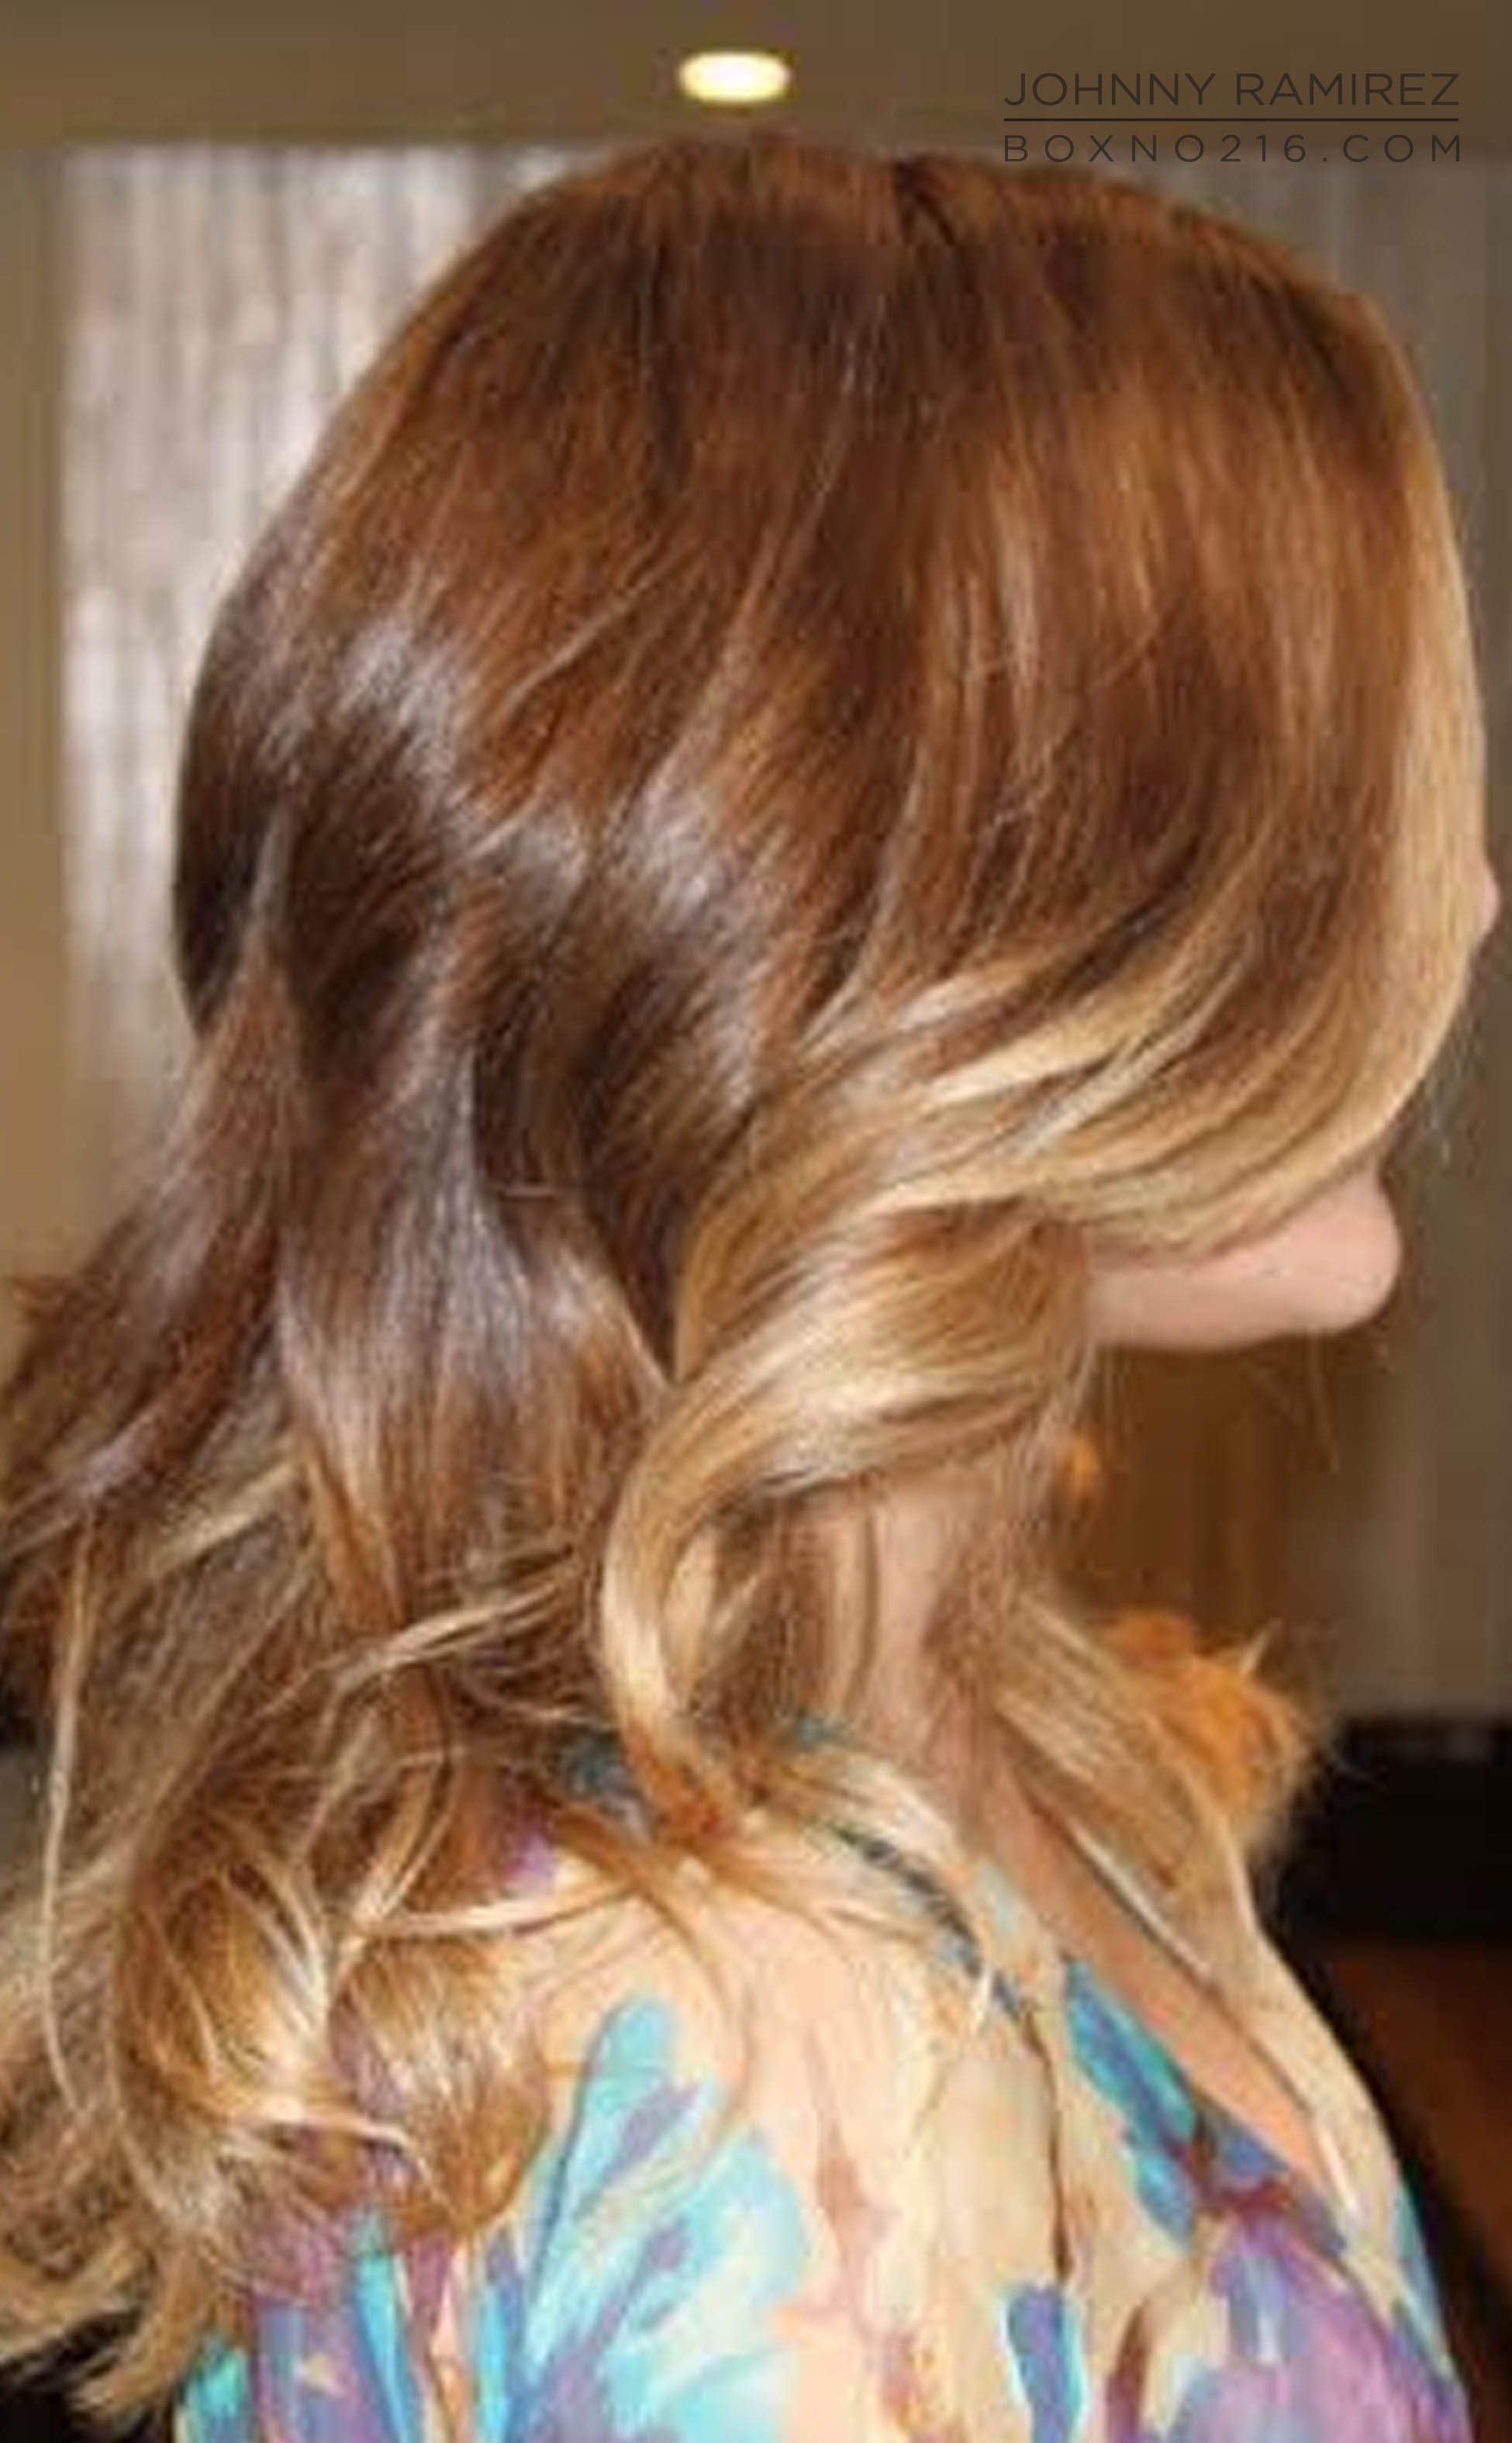 Box No. 216 Color By Johnny Ramirez For appointments